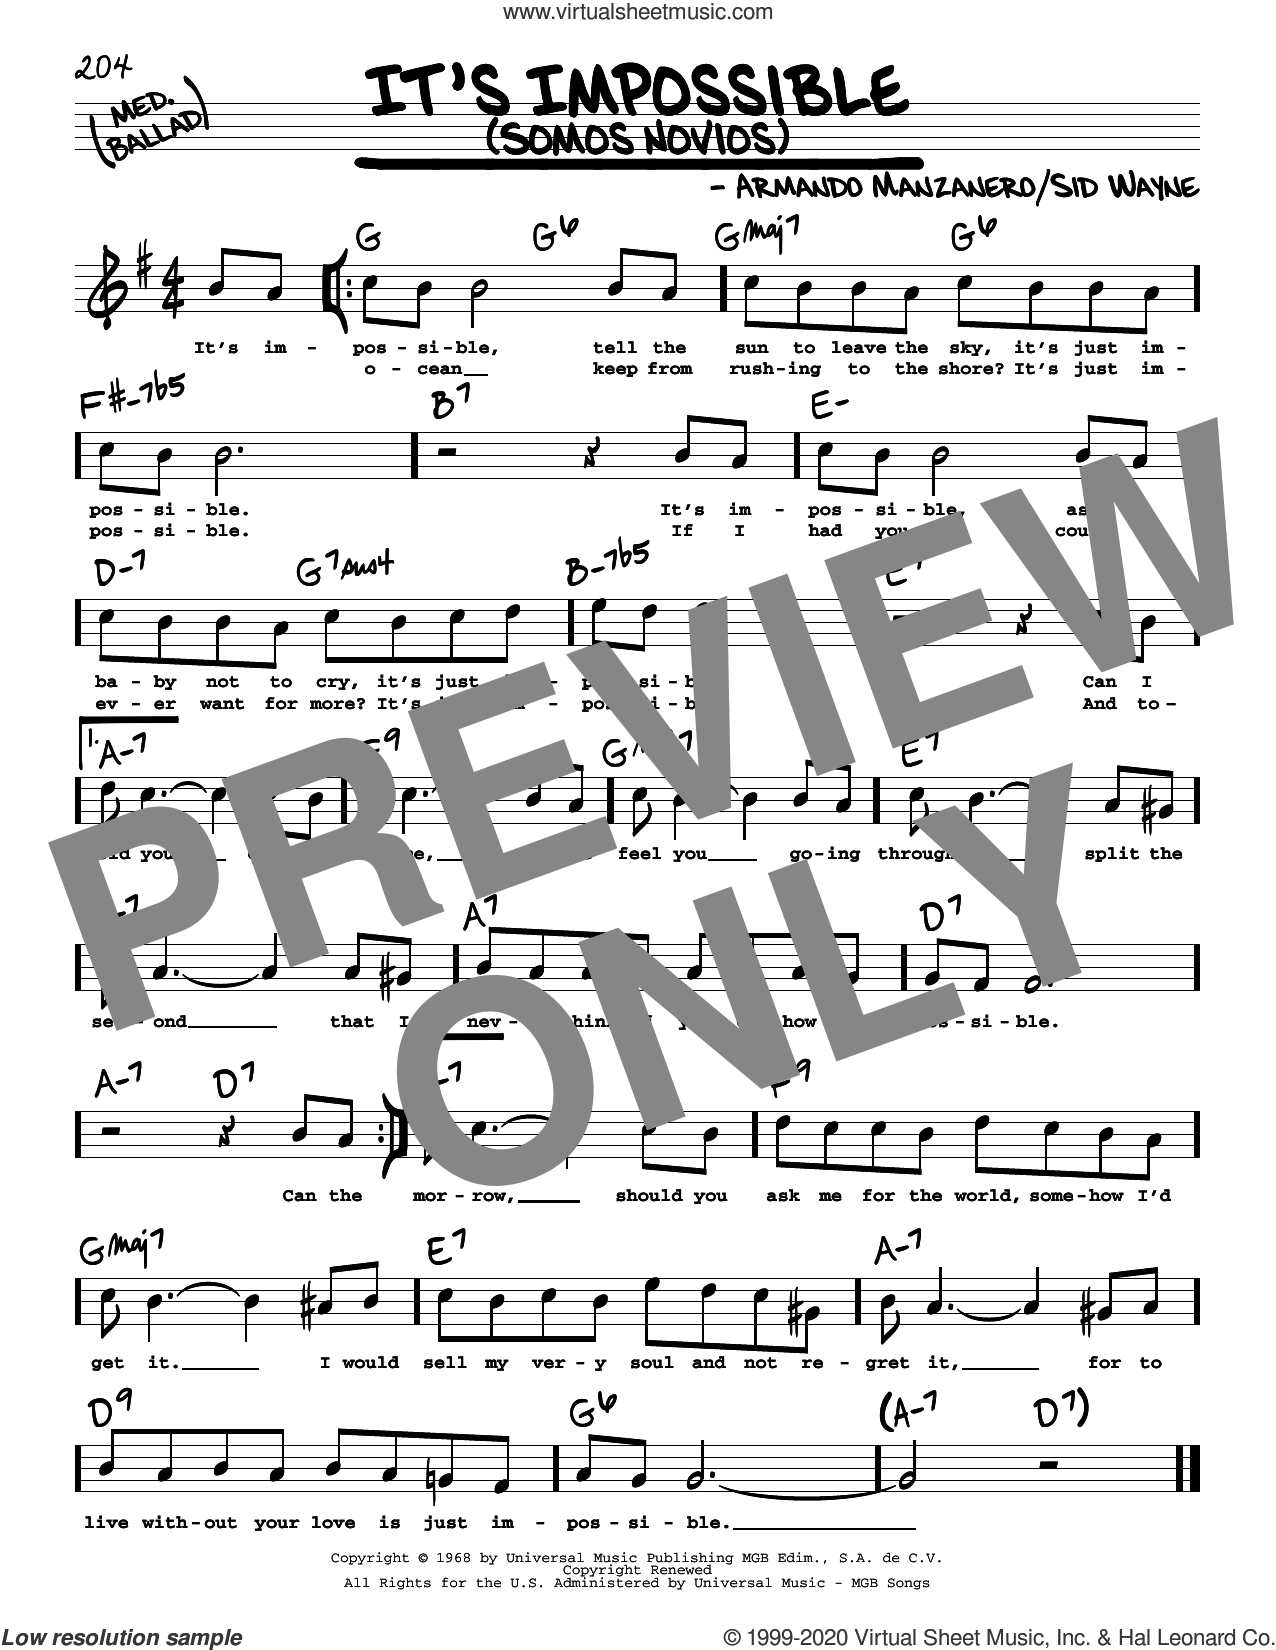 It's Impossible (Somos Novios) (High Voice) sheet music for voice and other instruments (high voice) by Elvis Presley, Perry Como, Armando Manzanero and Sid Wayne, intermediate skill level